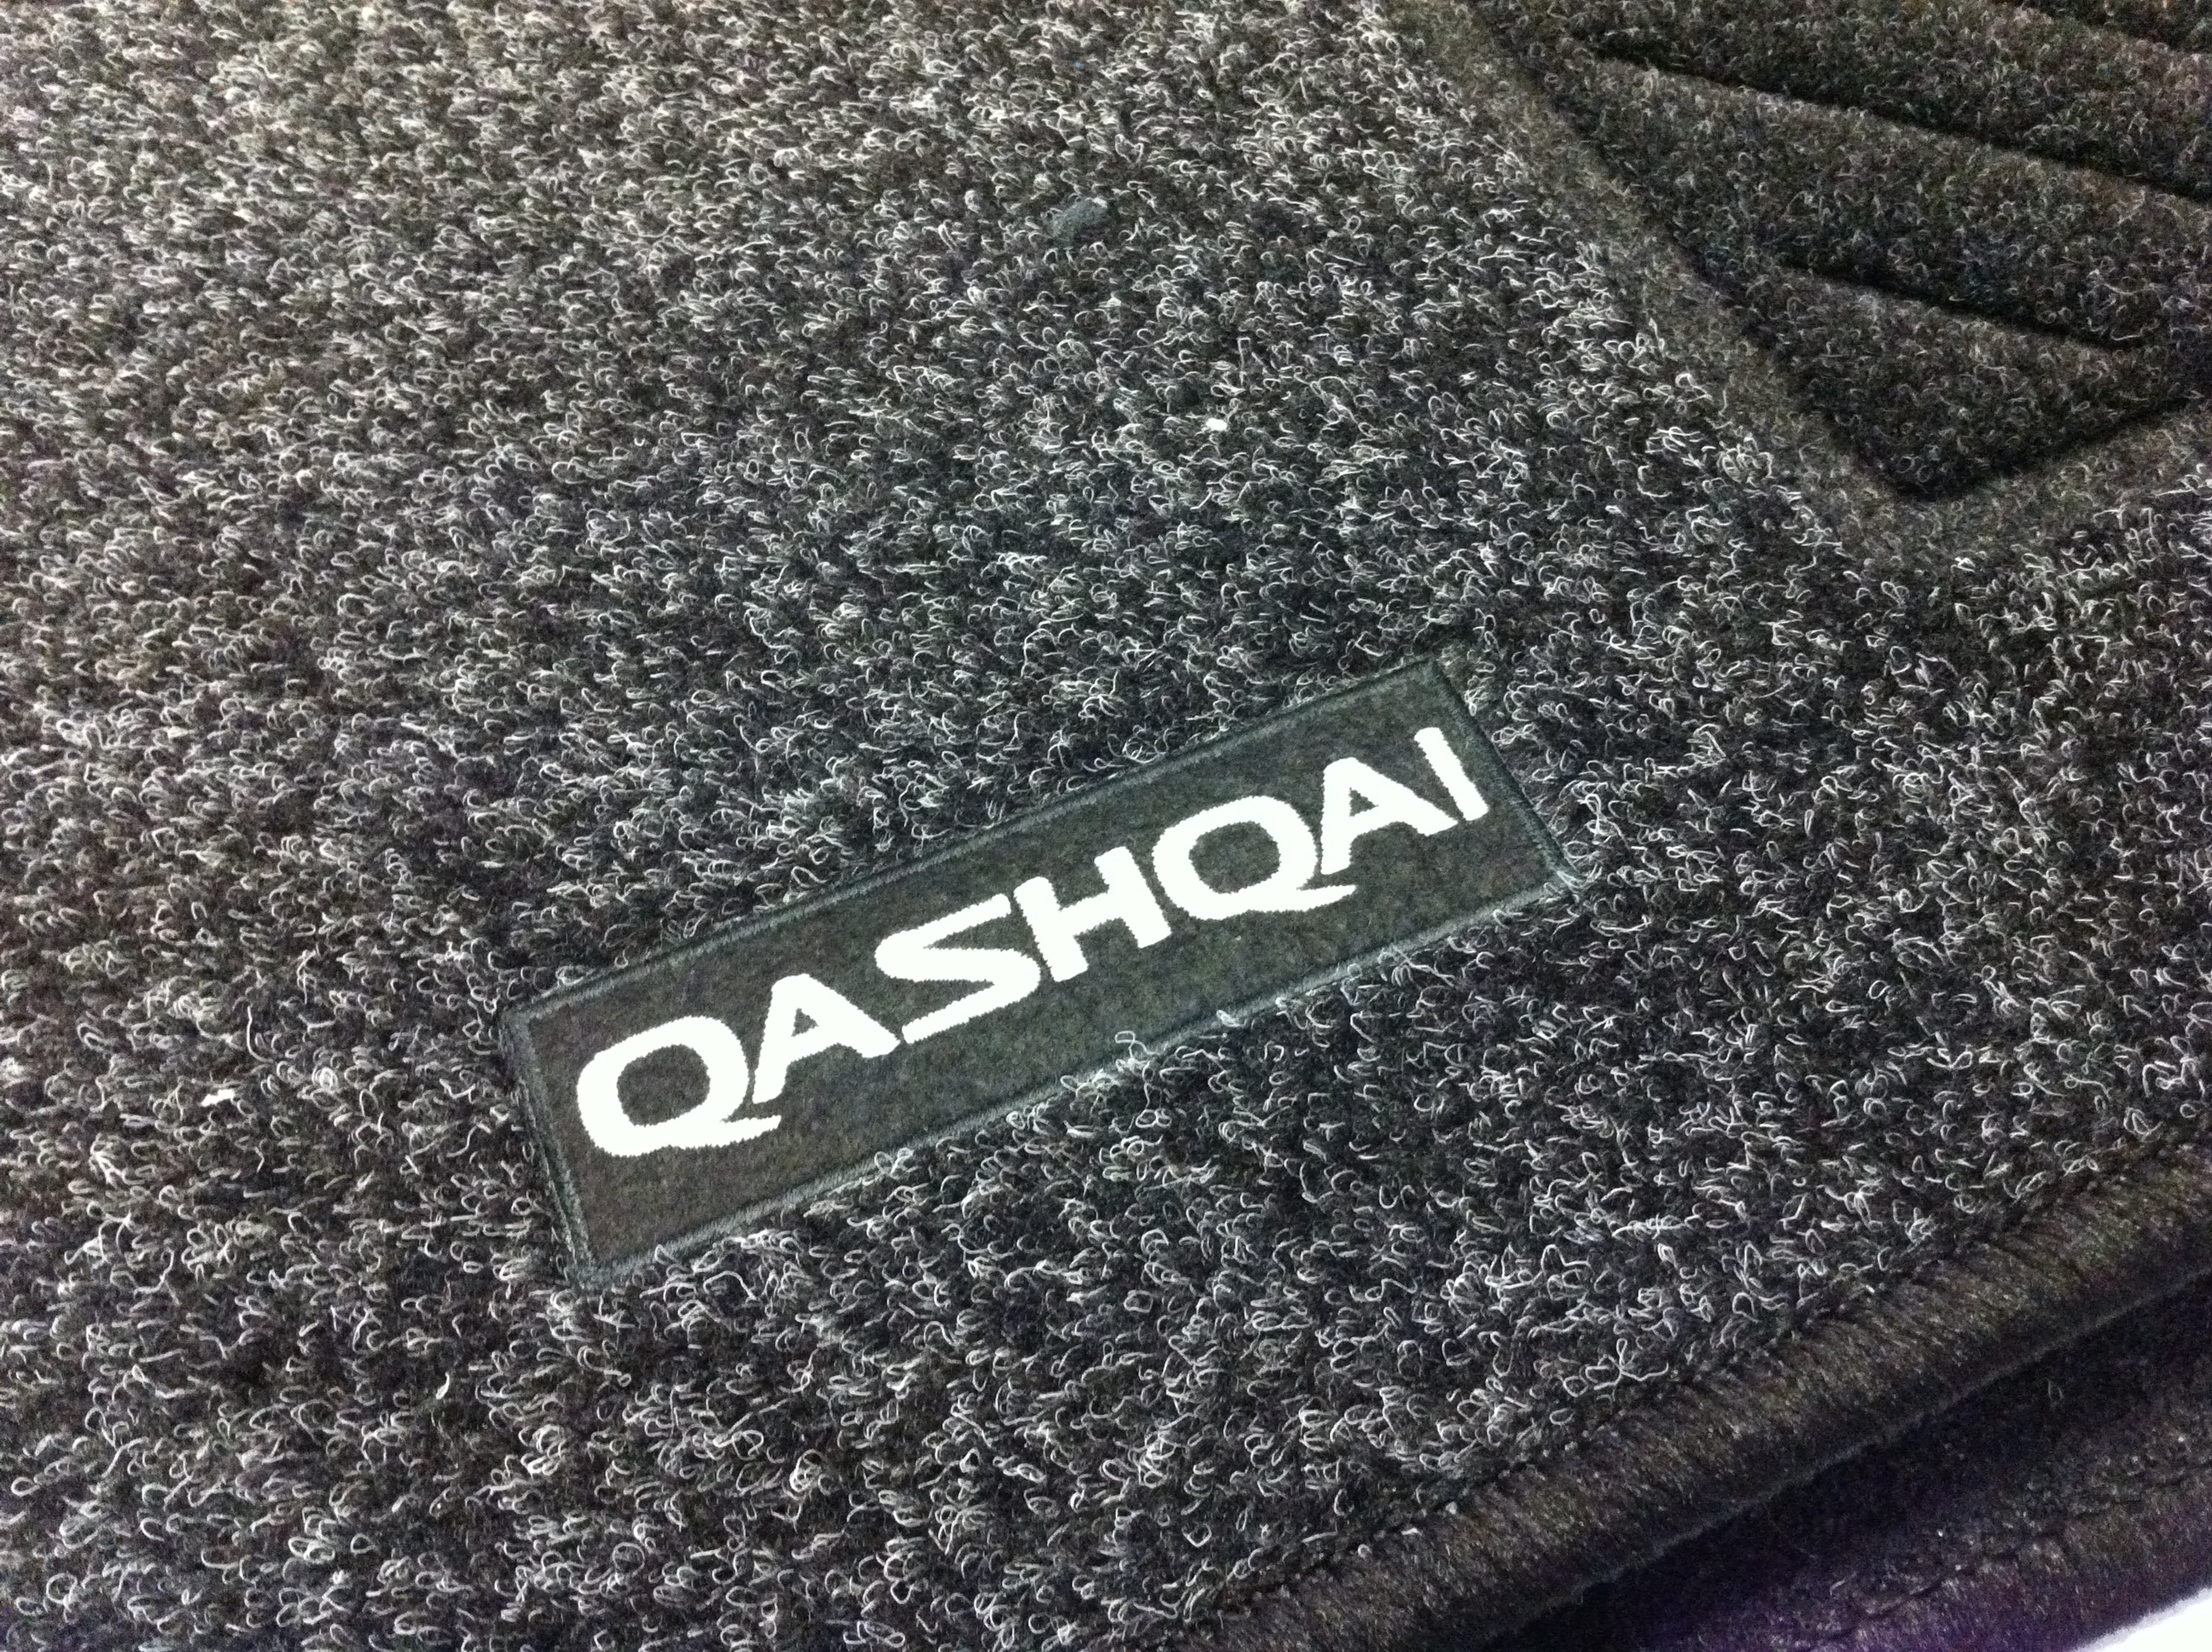 Floor mats qashqai -  Nissan Qashqai Genuine Car Floor Mats Tailored Carpet Front Rear X4